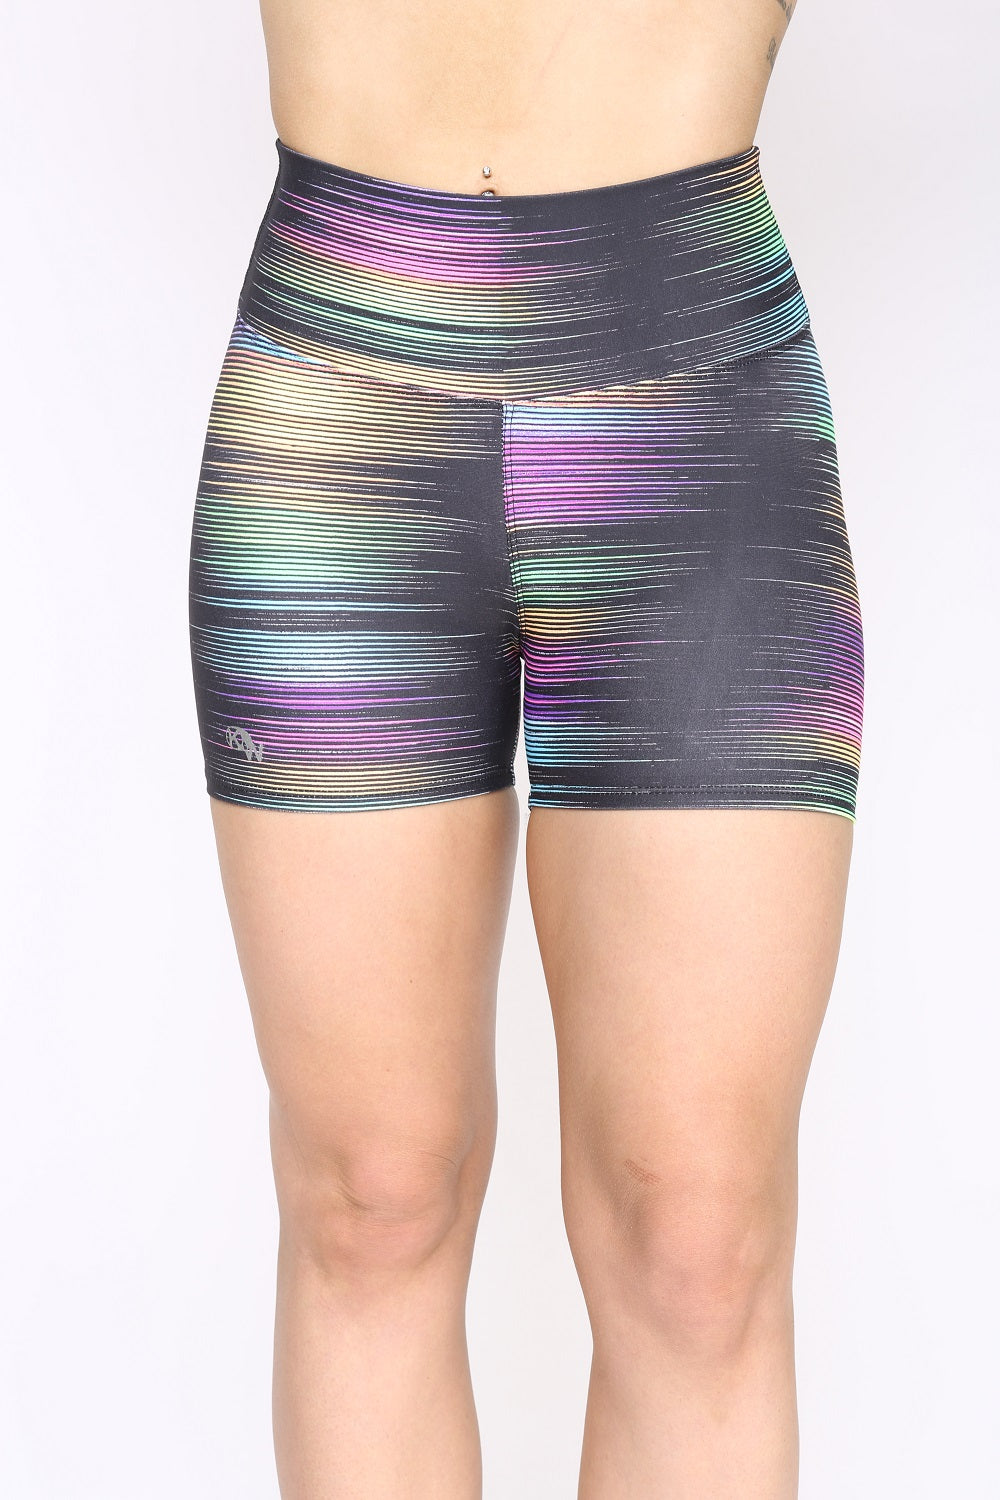 Bomb Shorts Spectrum - KDW Apparel